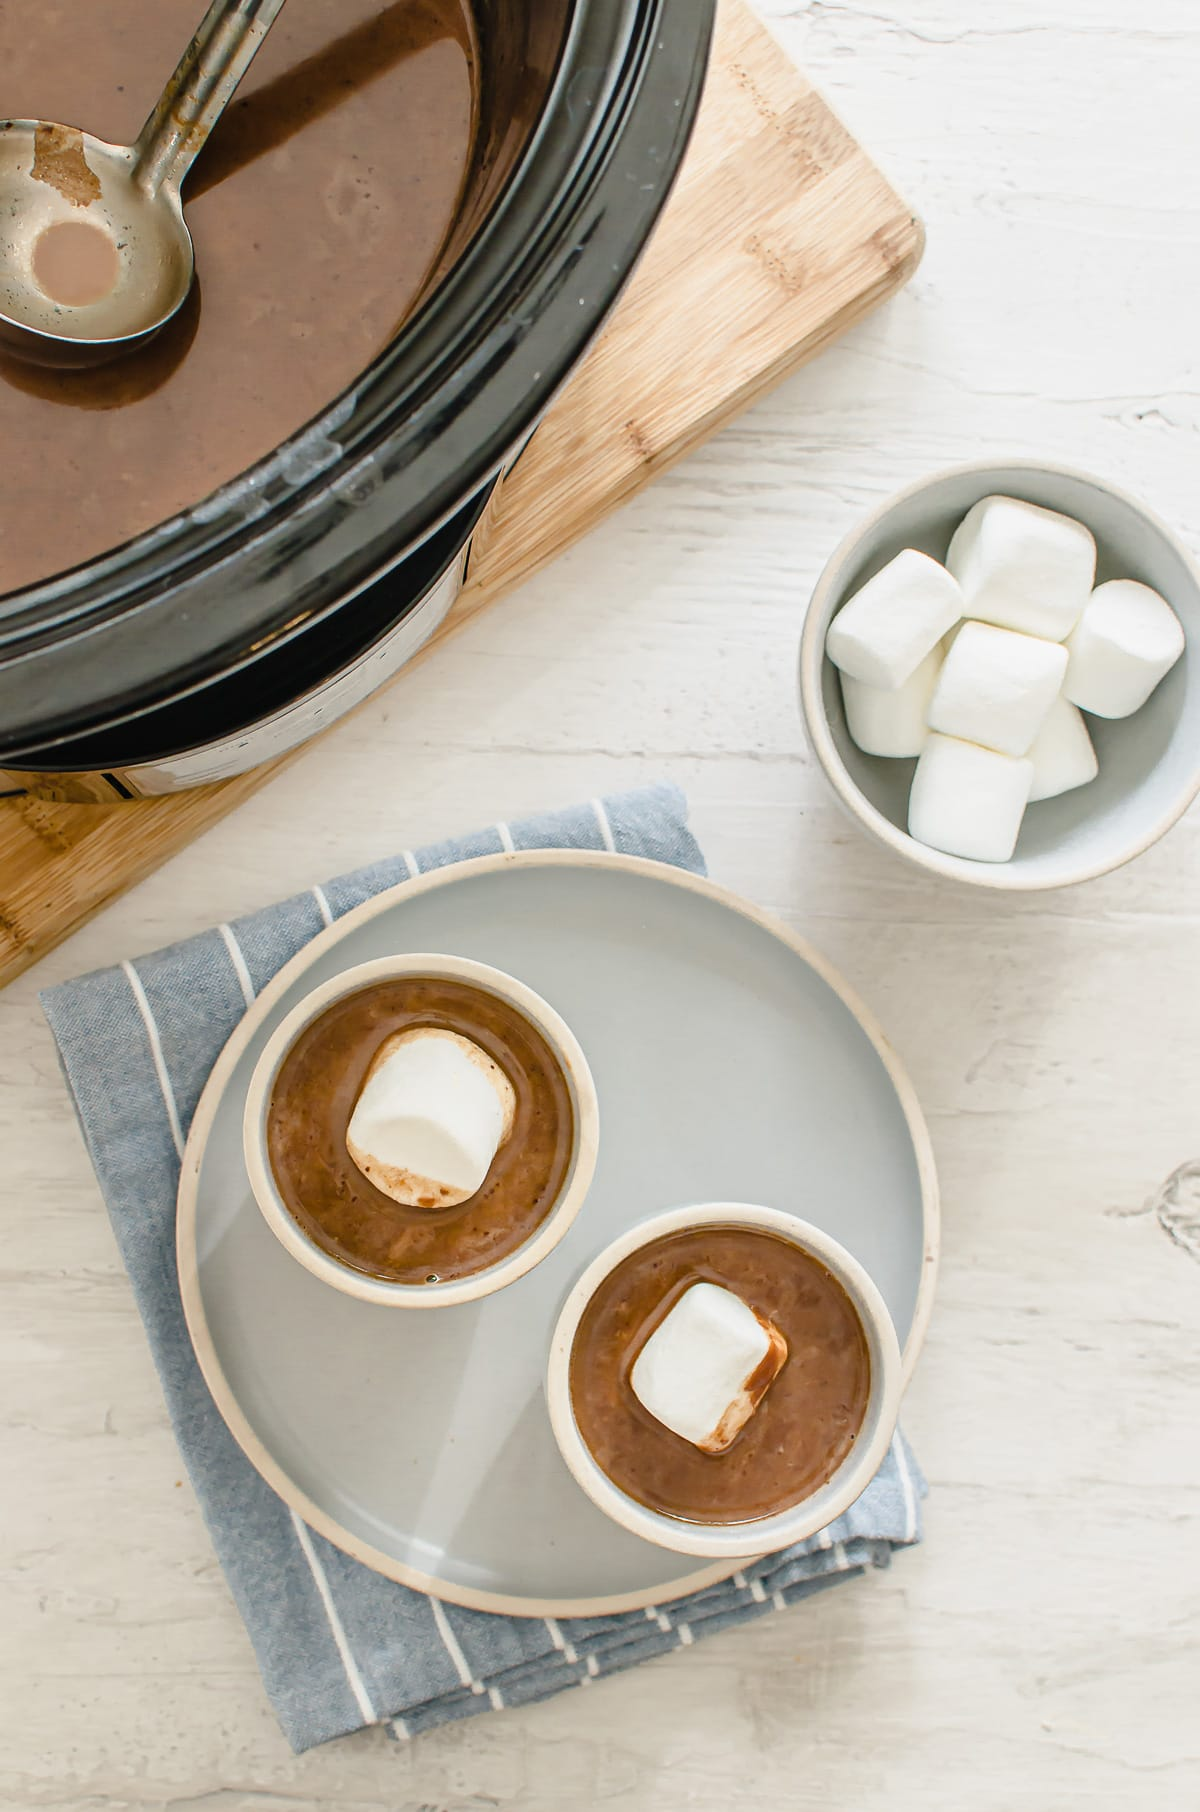 A slow cooker with hot chocolate next to two cups of chocolate with a bowl of marshmallows on the side.